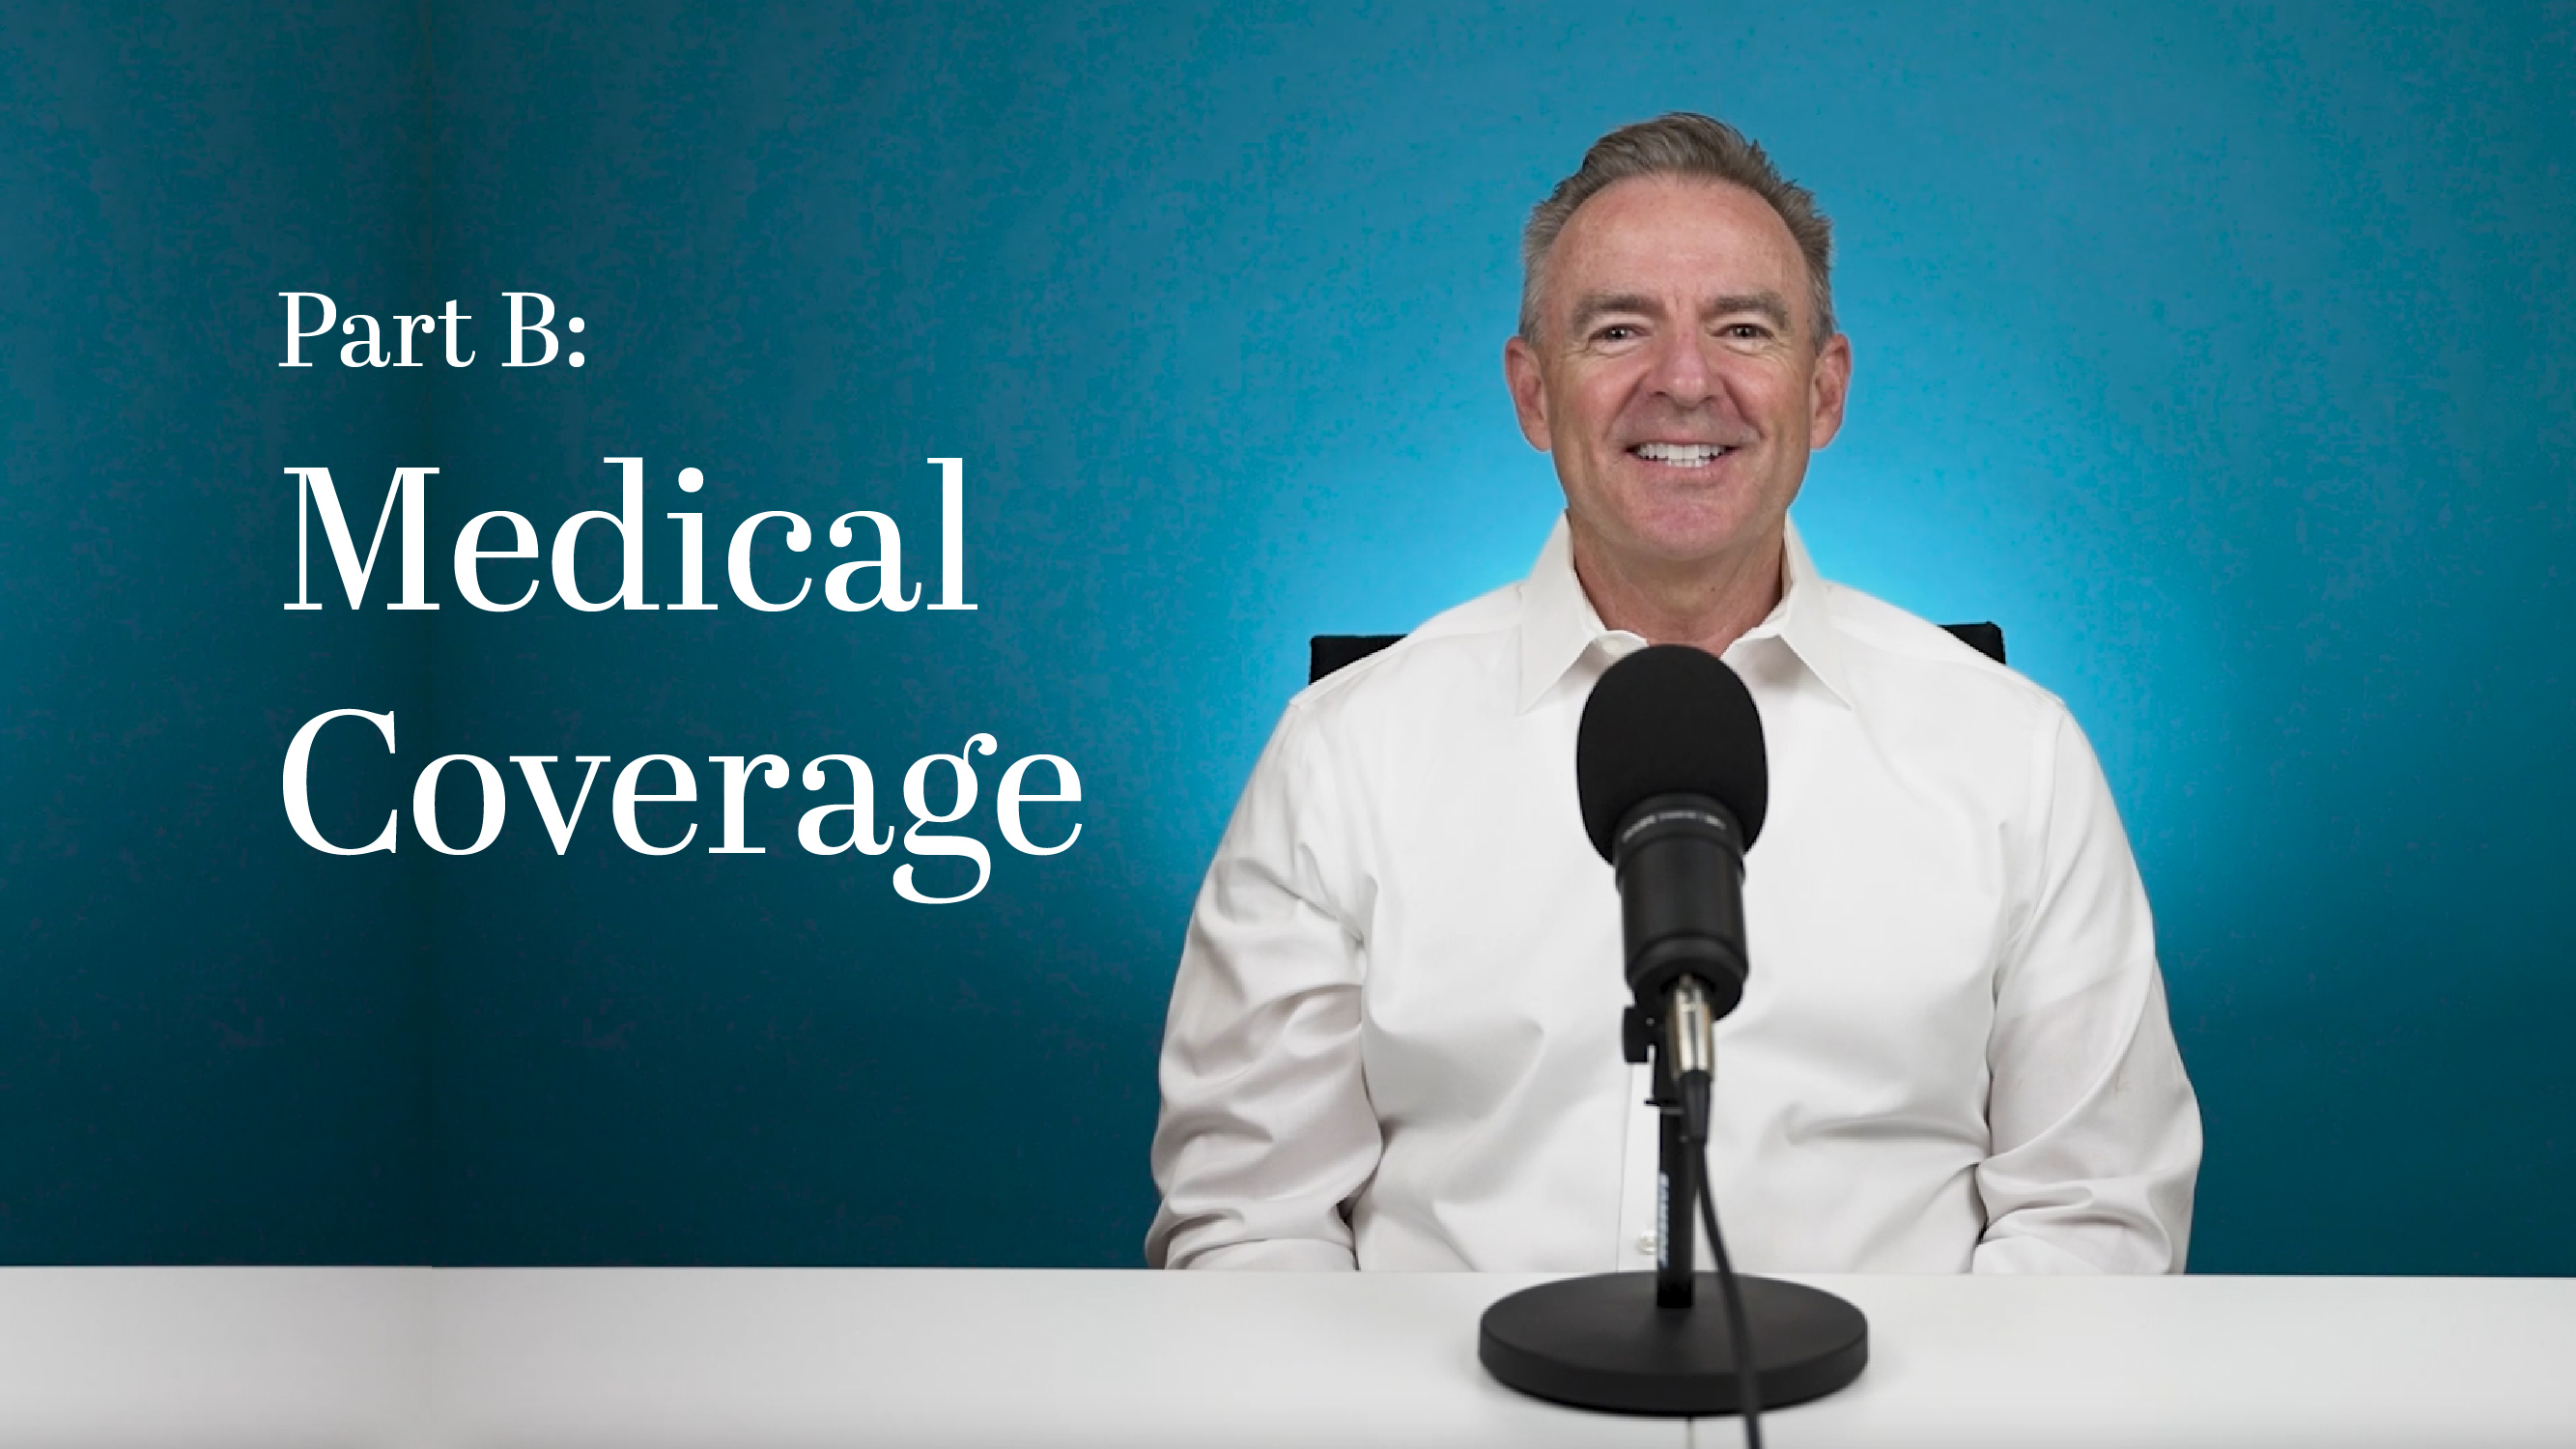 Part B Medical Coverage